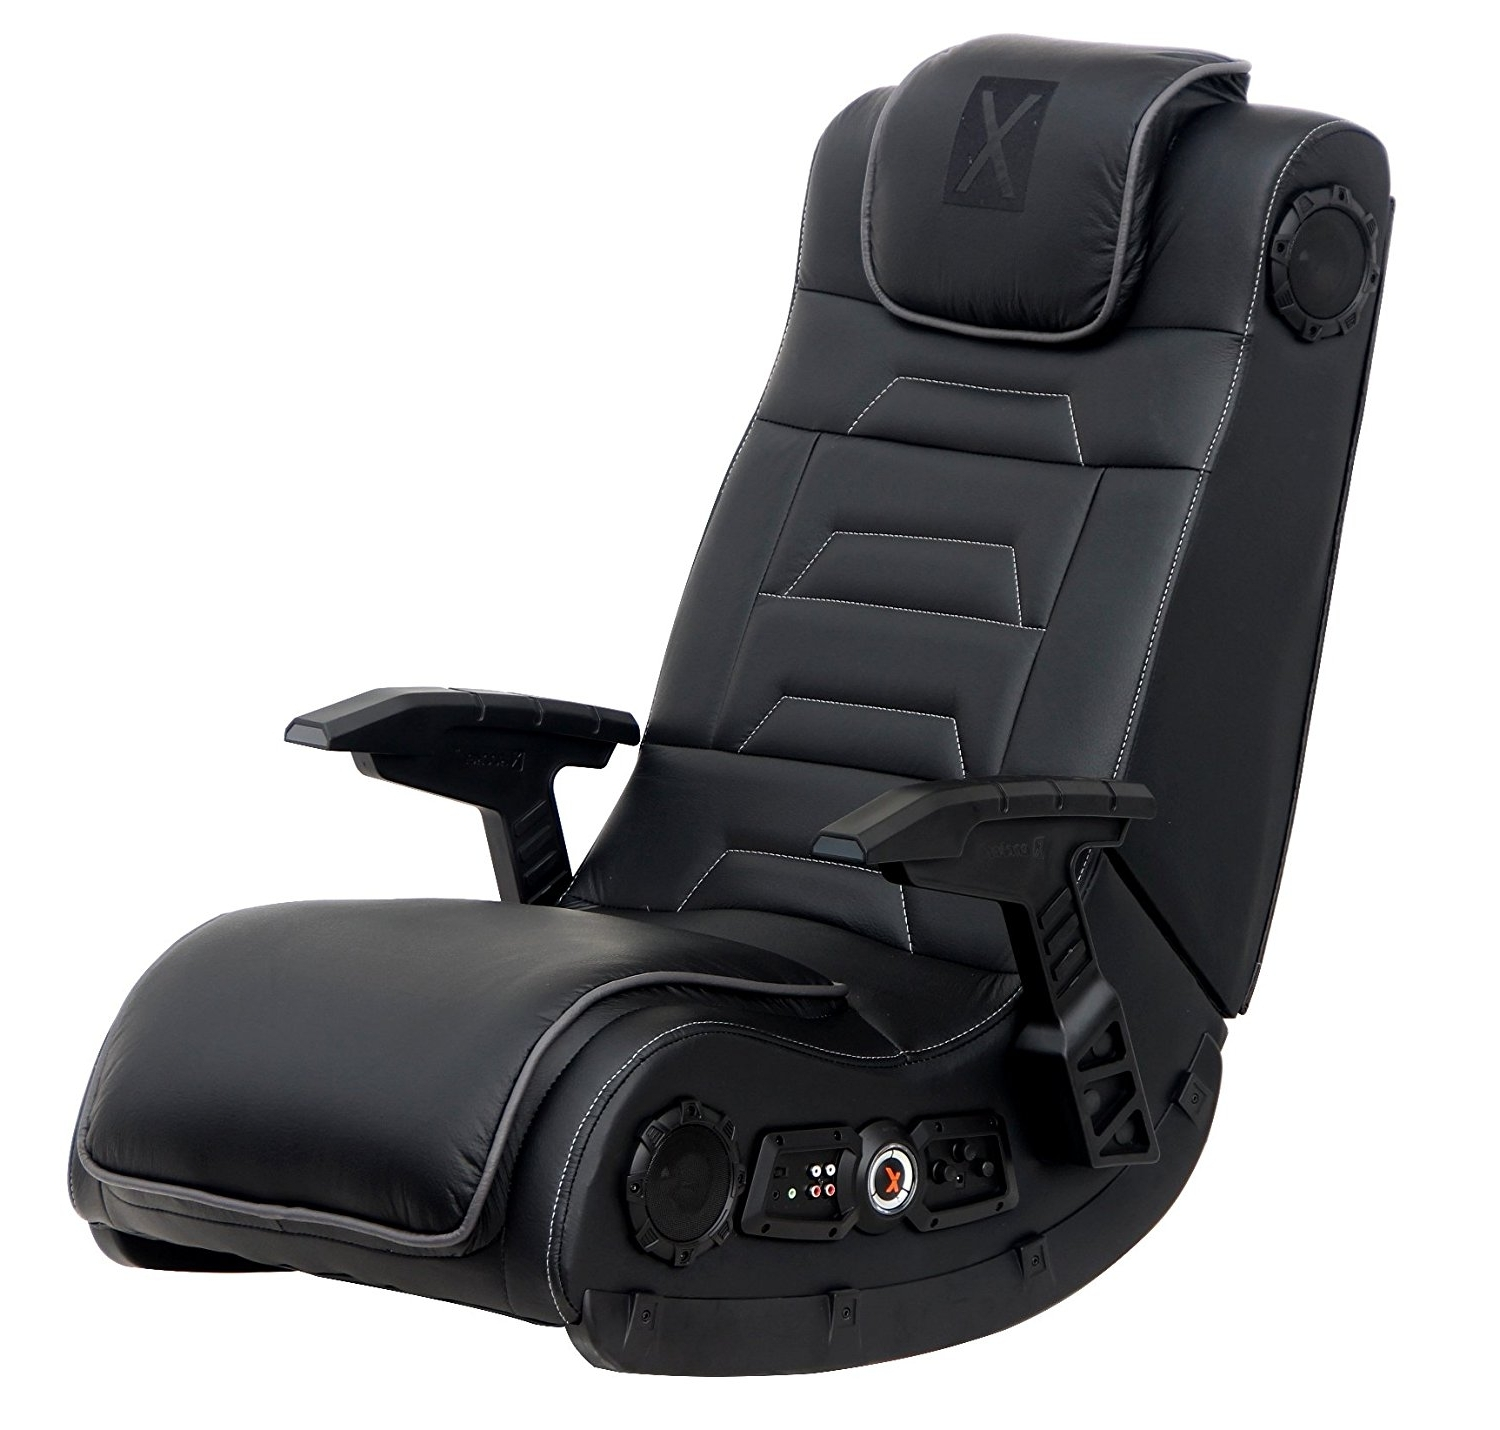 2018 Video Game Chairs (View 14 of 15)